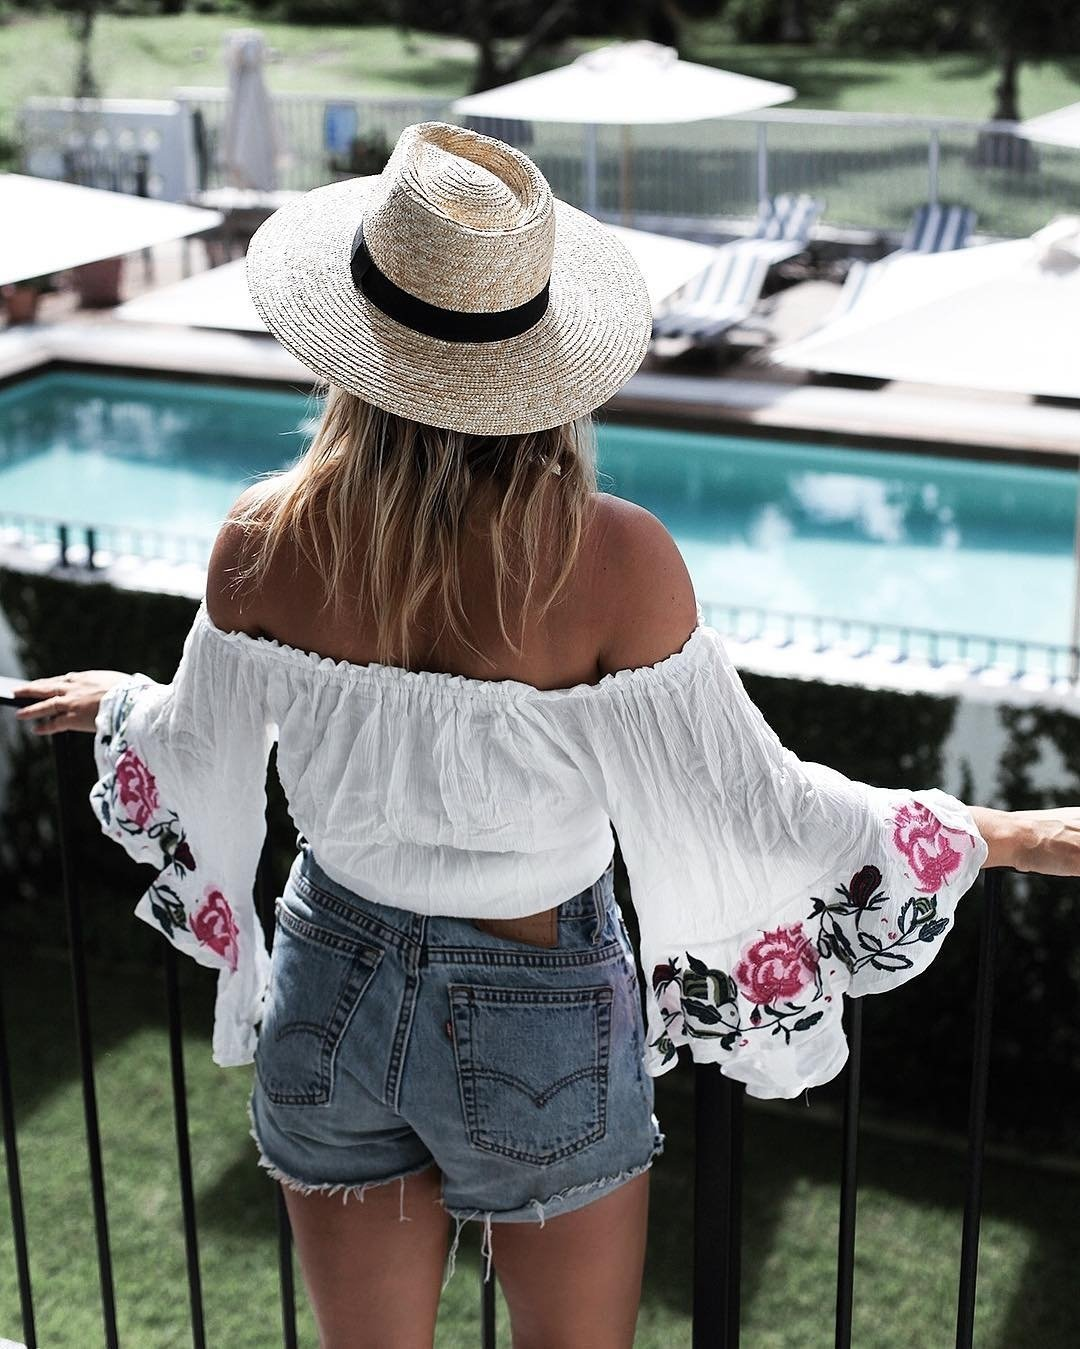 10 Cute Cute Outfit Ideas For Summer 36 cute outfit ideas for summer 2018 summer outfit inspirations 2020